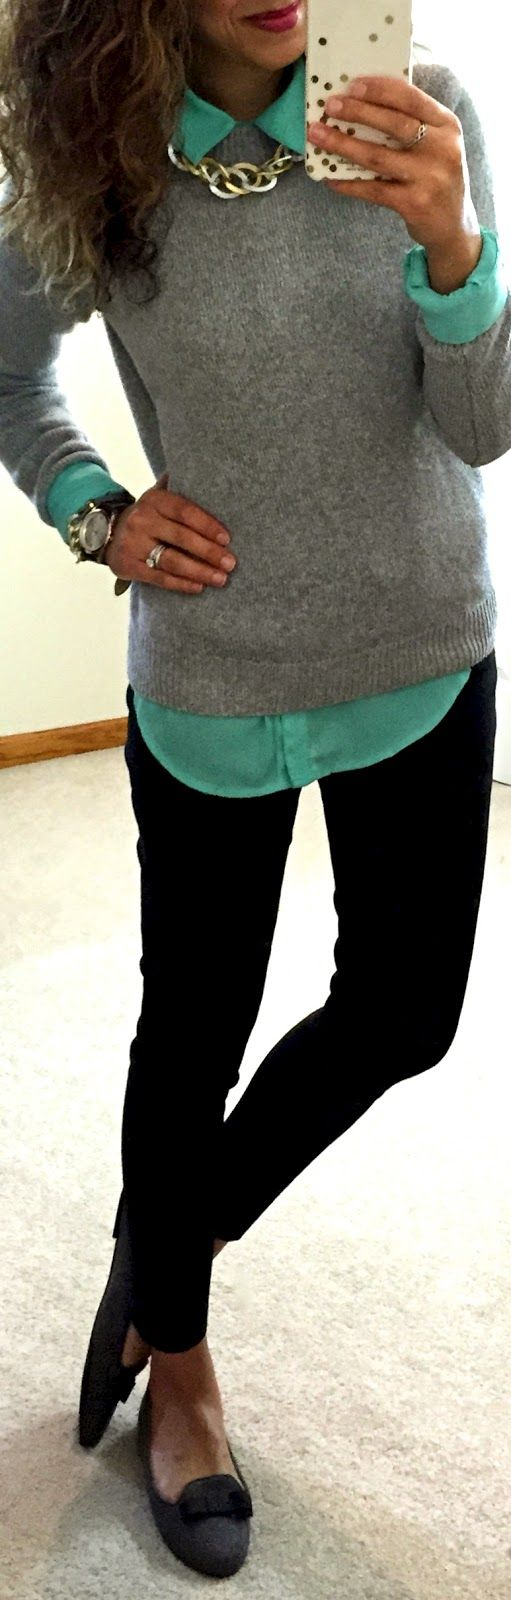 Really like the blouse/sweater/necklace look and cute with black pants for work (but not a fan of the mint color)